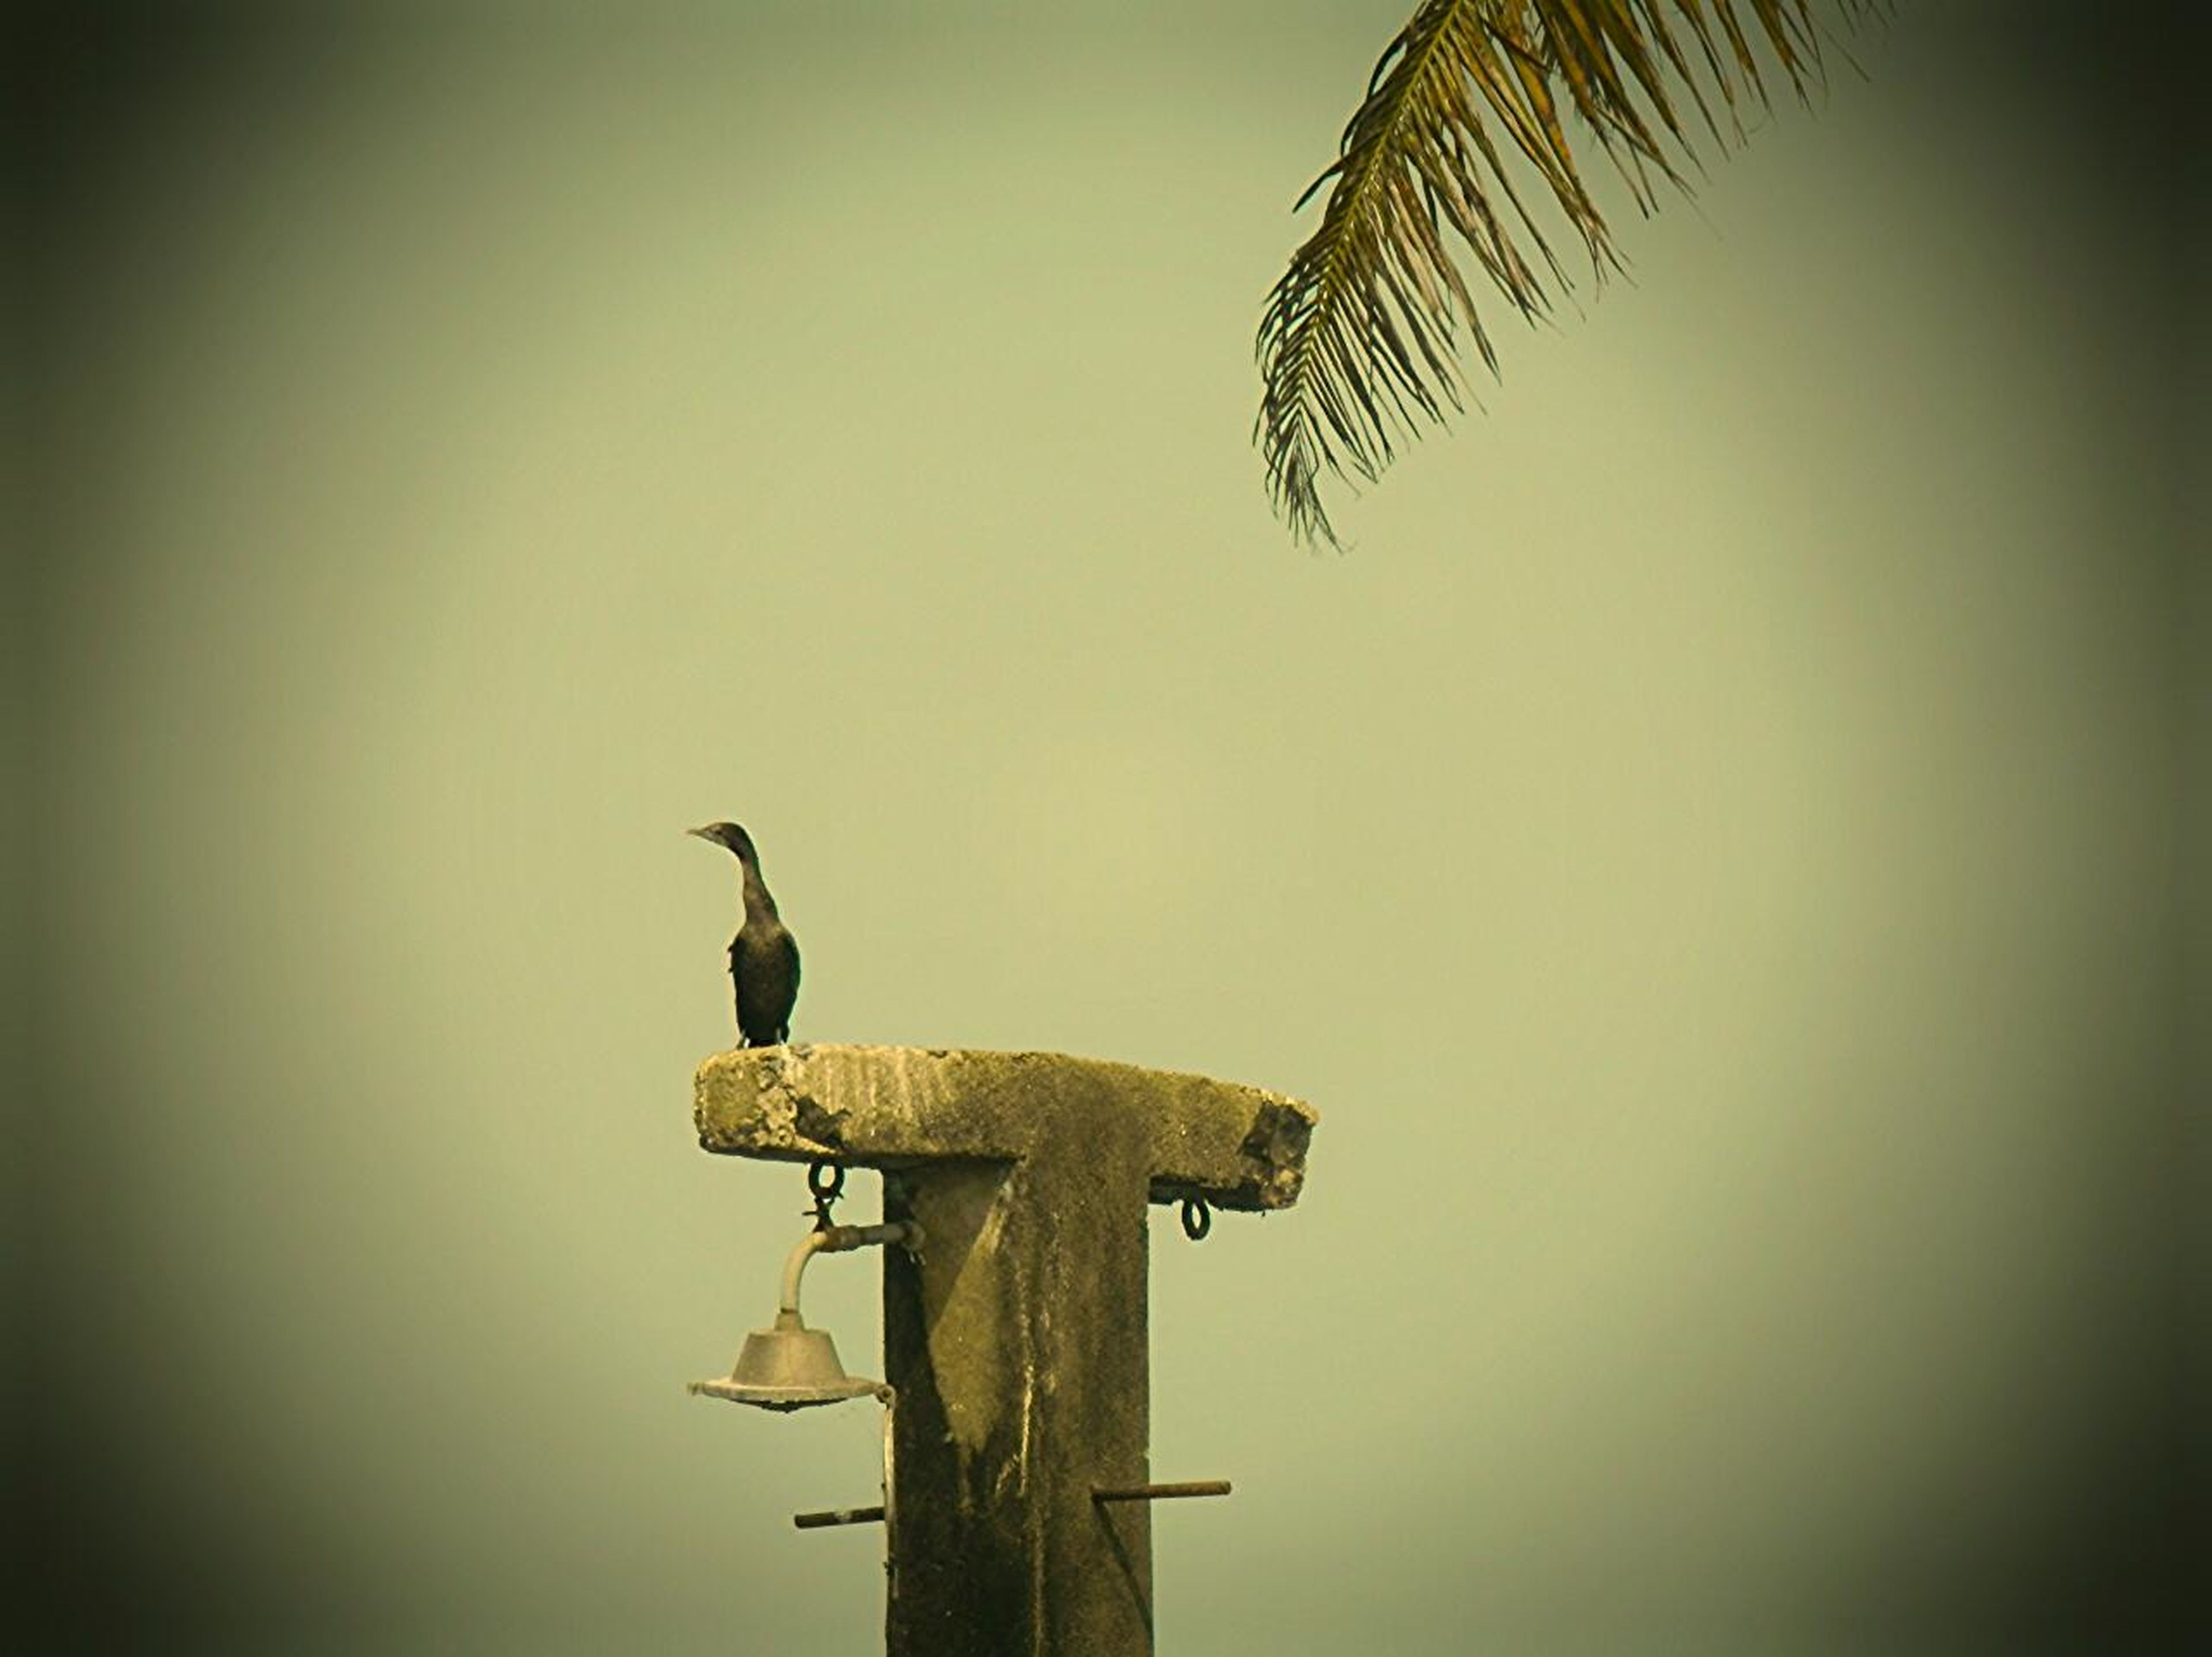 bird, animal themes, animals in the wild, low angle view, wildlife, clear sky, silhouette, one animal, perching, flying, copy space, spread wings, sky, mid-air, full length, two animals, nature, dusk, outdoors, no people